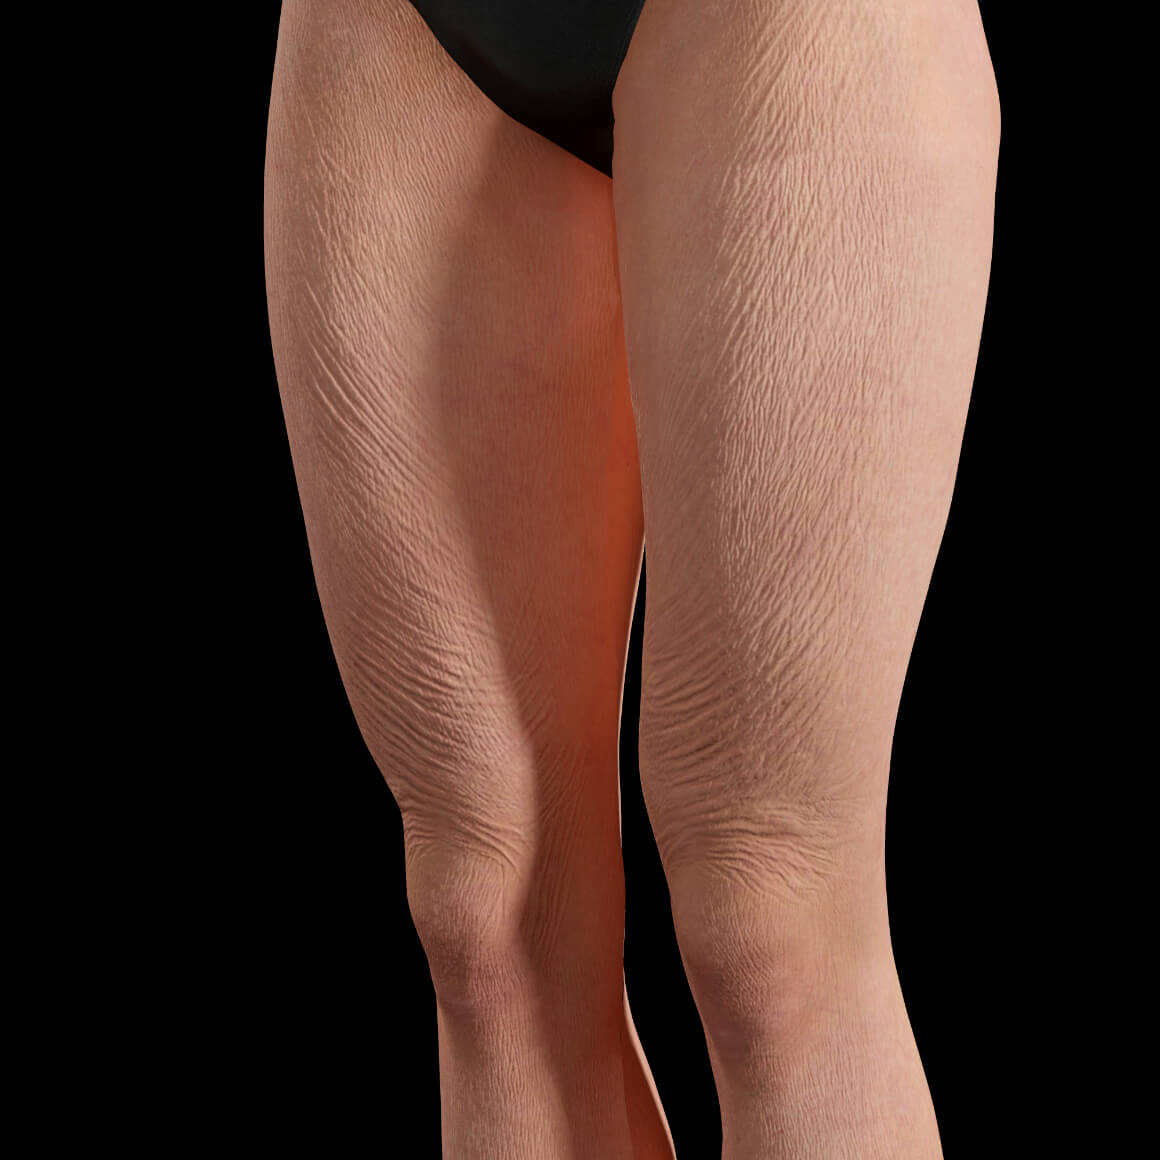 Angled Clinique Chloé female patient showing body skin laxity on her thighs